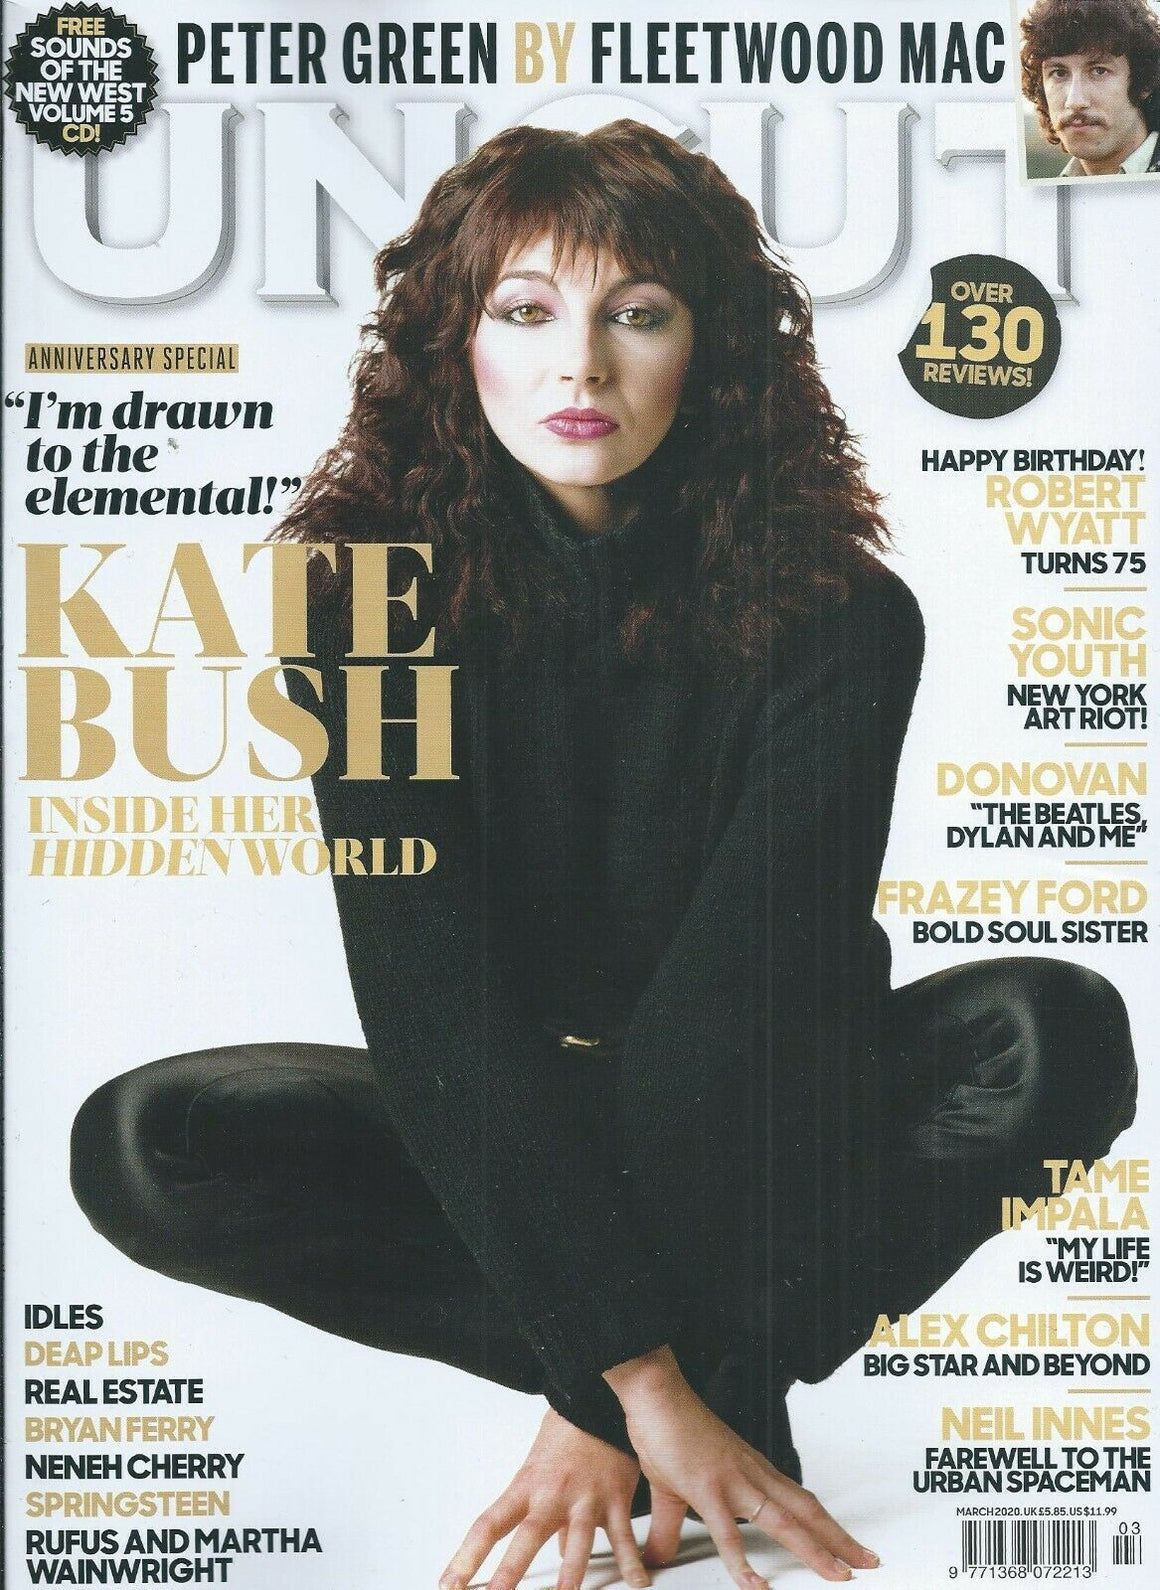 UK Uncut Magazine MARCH 2020: KATE BUSH - Inside Her Hidden World